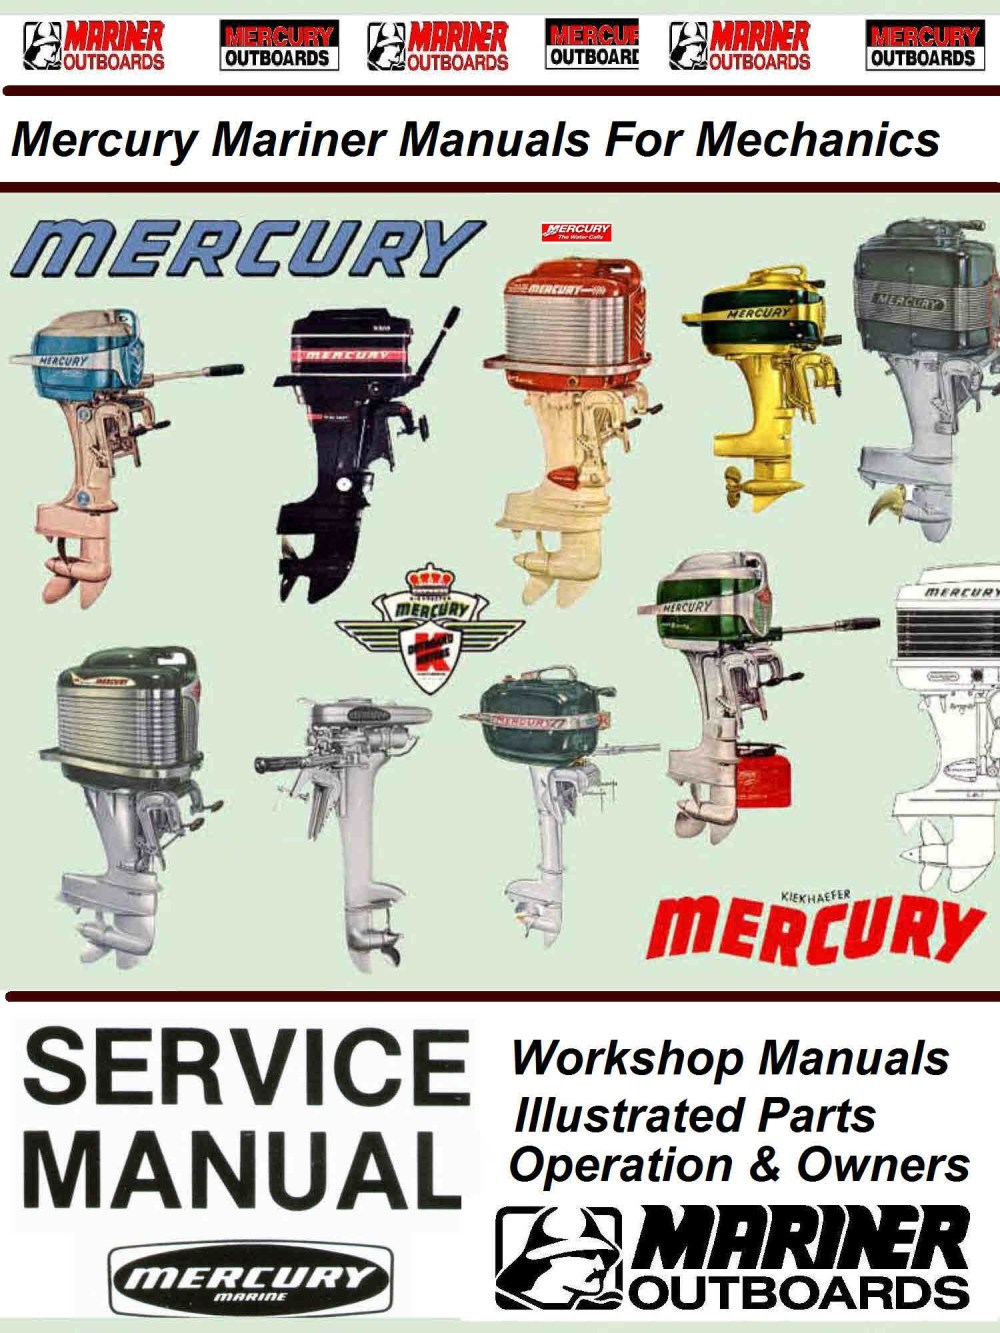 medium resolution of mercury mariner vintage service manuals for mechanicslarge collection of mercury mariner workshop service manualsillustrated parts manuals operator